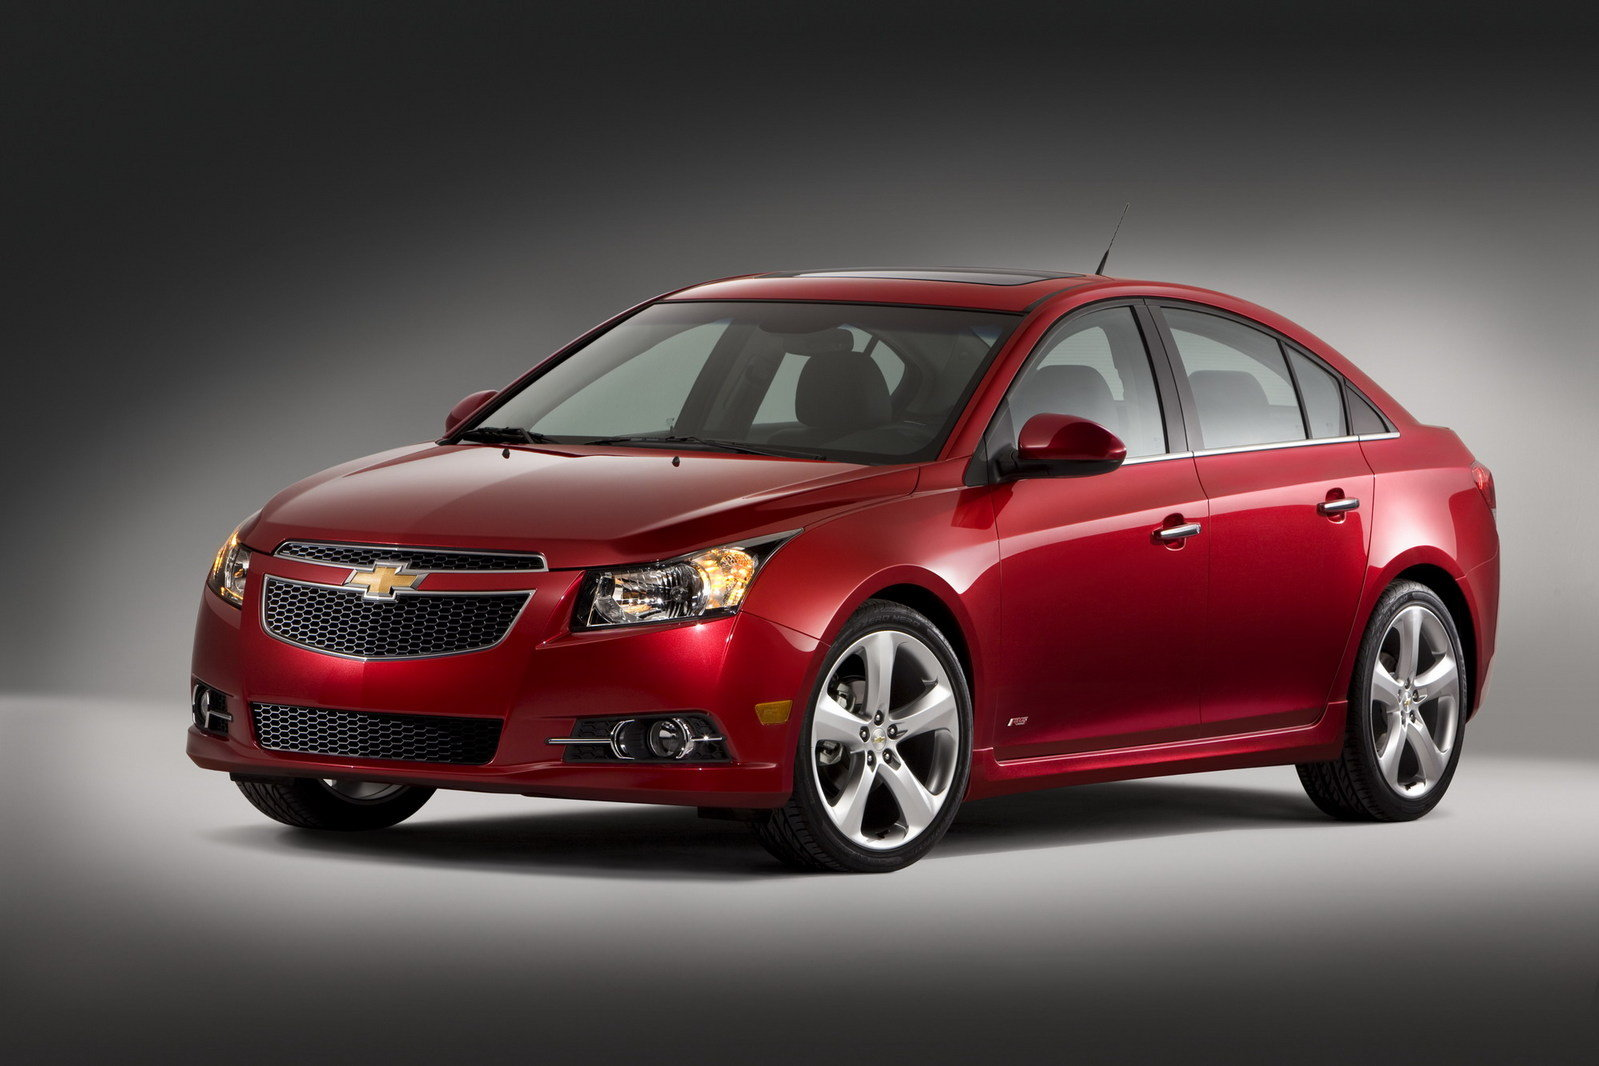 Cruze chevy cruze ltz review : 2011 Chevrolet Cruze RS Review - Top Speed